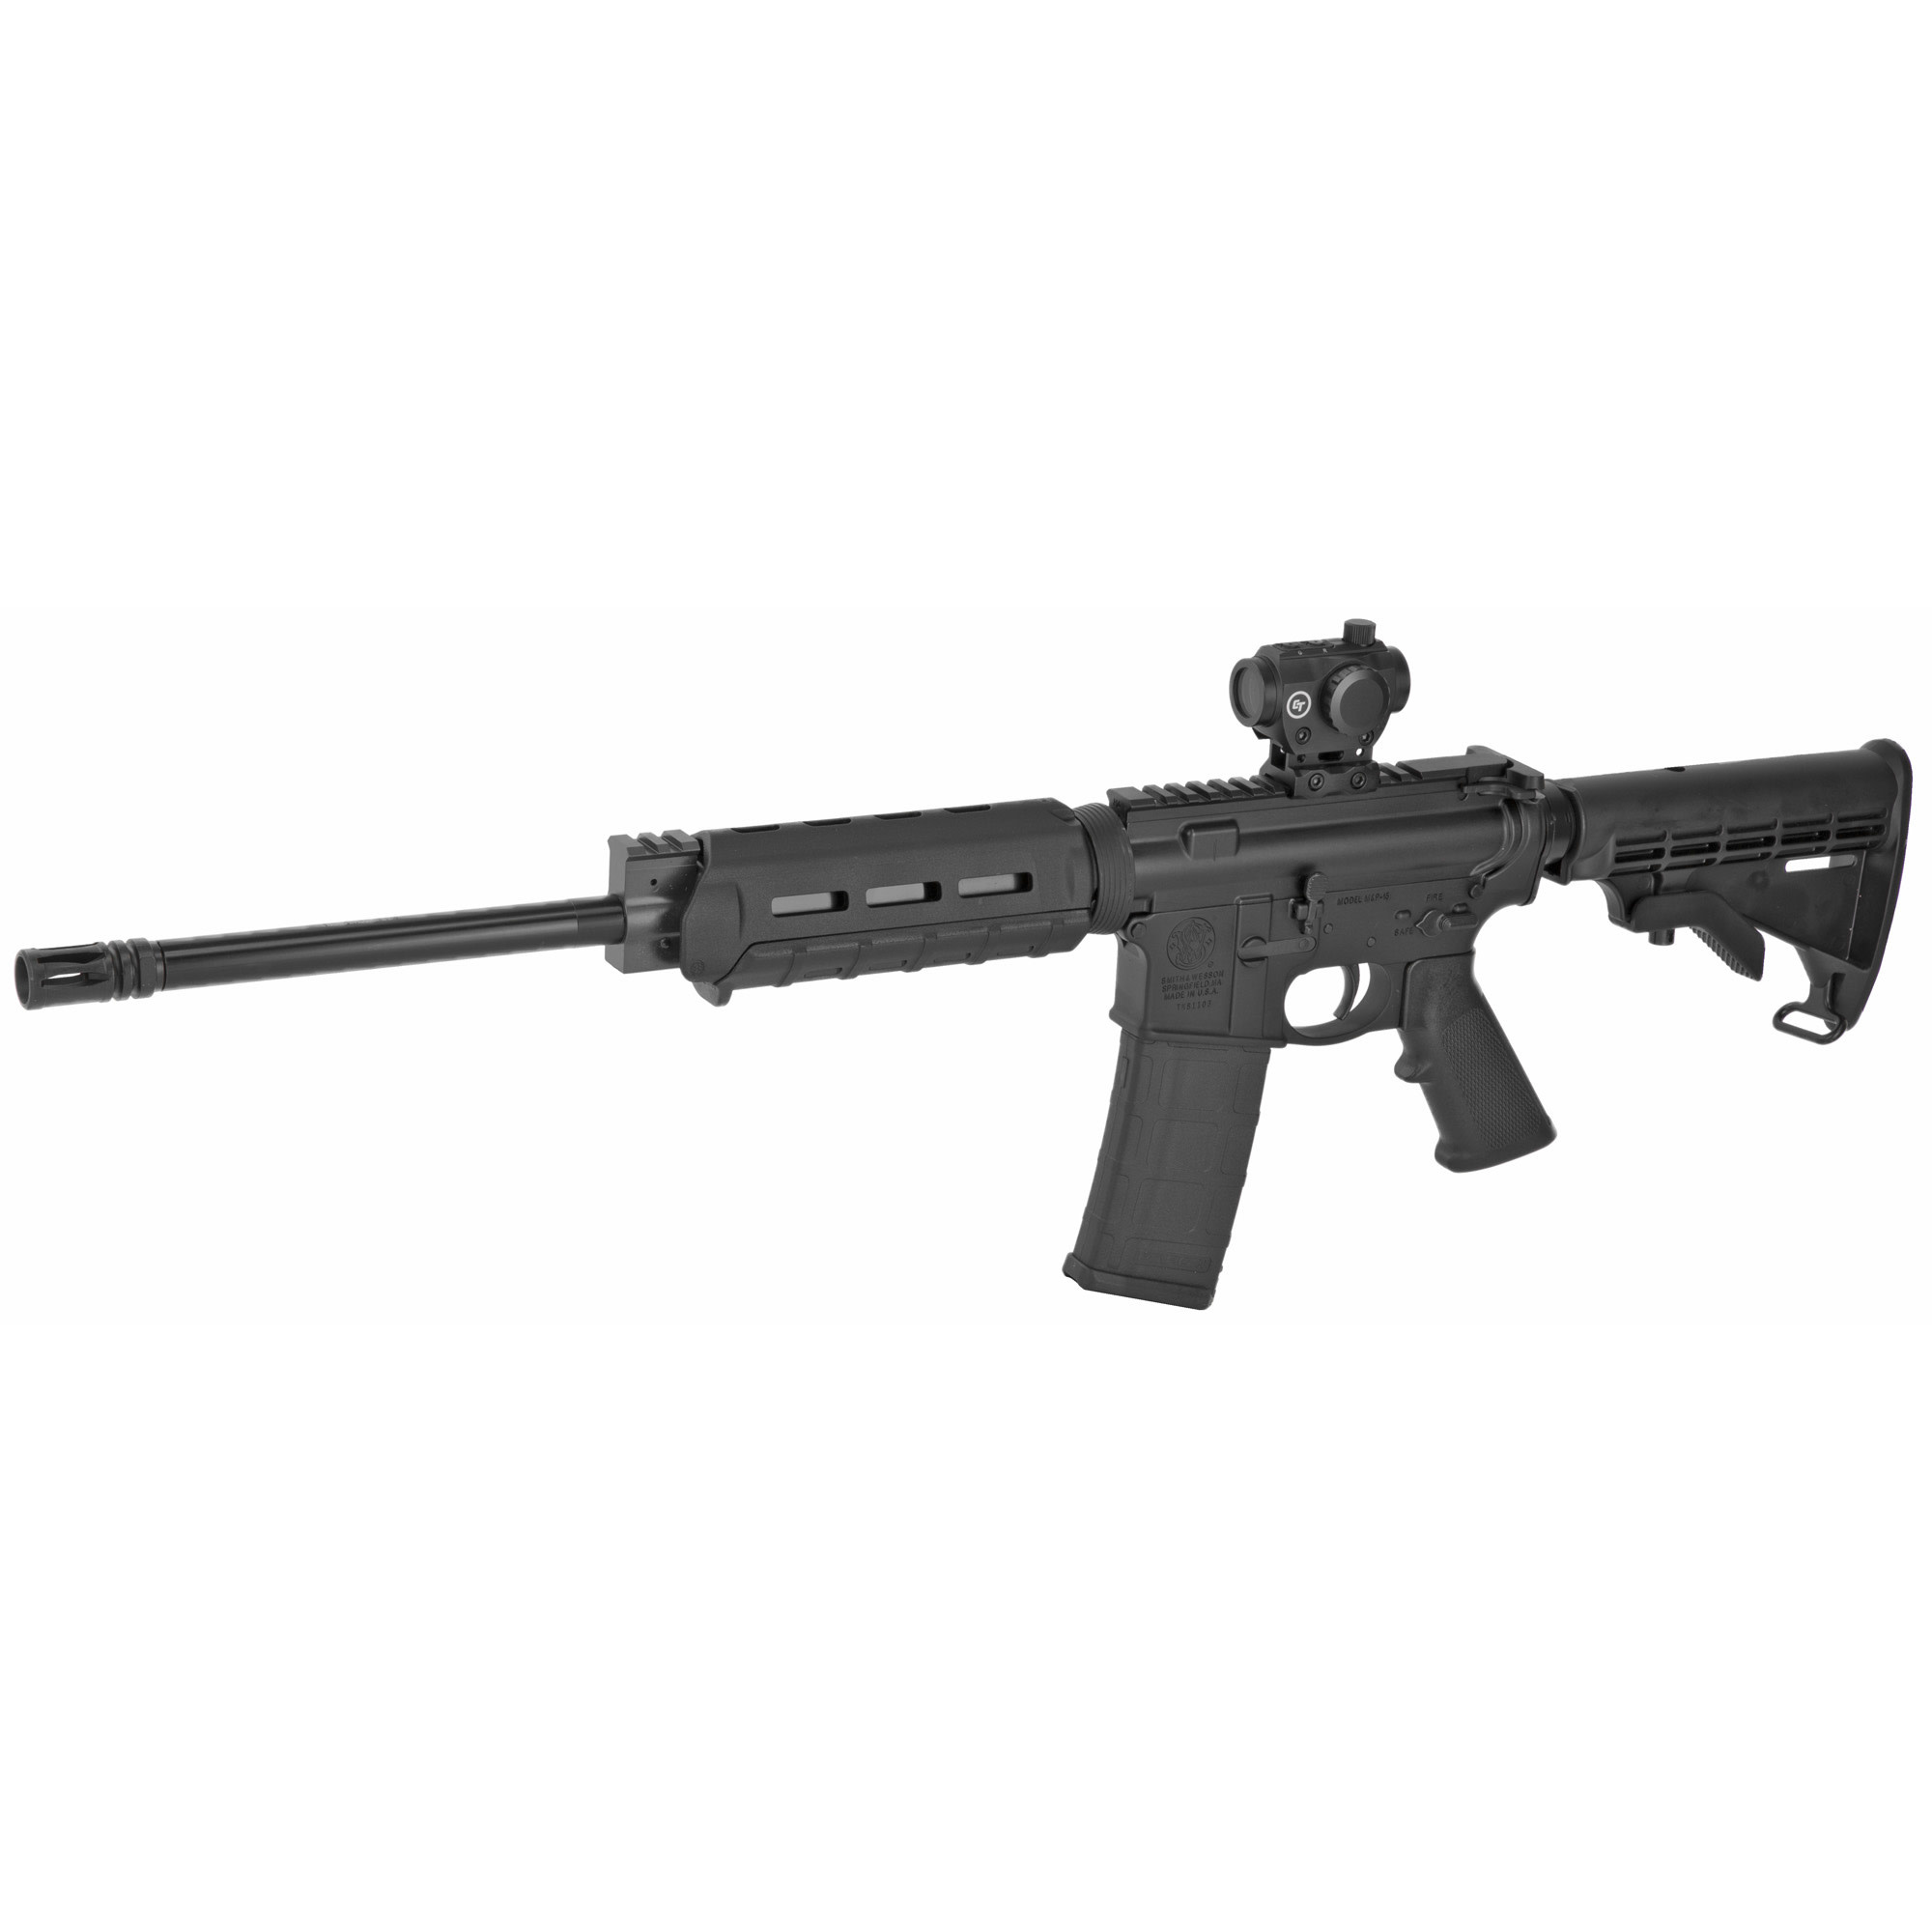 """Smith & Wesson, M&P 15 Sport II OR, 556, 16"""", Black, 30Rd, M-LOK Handguard, Crimson Trace CTS-103 Red/Green Dot 4MOA Dot"""